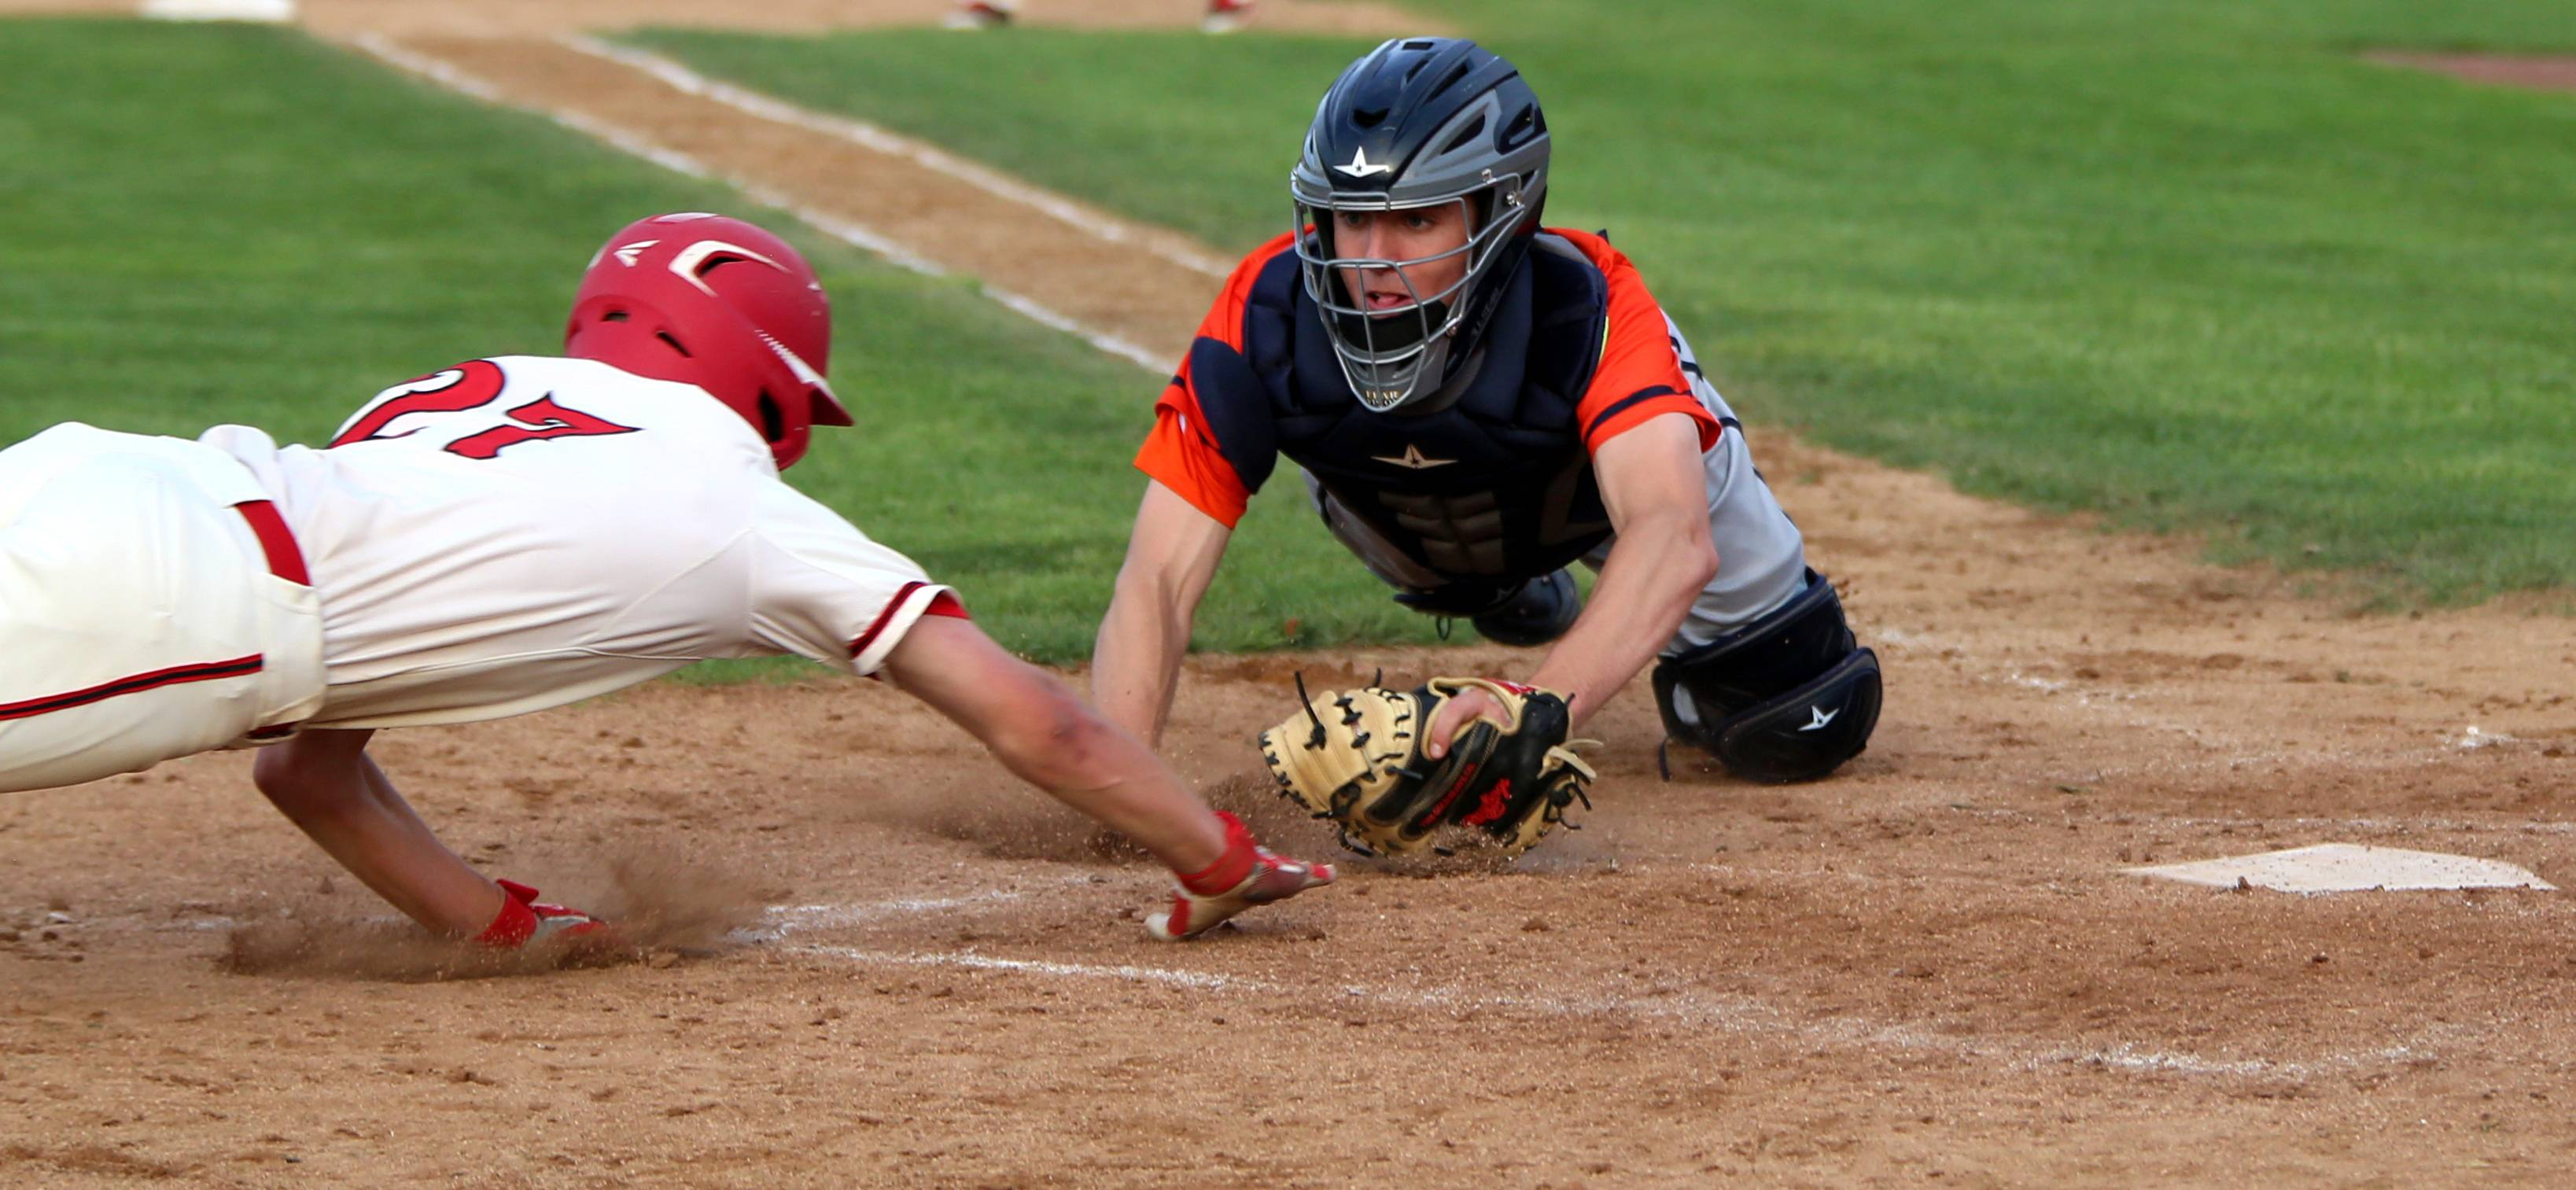 Buffalo Grove catcher Carter Gledhill prepares to tag Barrington's Nick Bogaerts at home plate during the Mid-Suburban League title game action at Coach Kirby Smith Field in Barrington on Thursday. Bogaerts was out on the play.